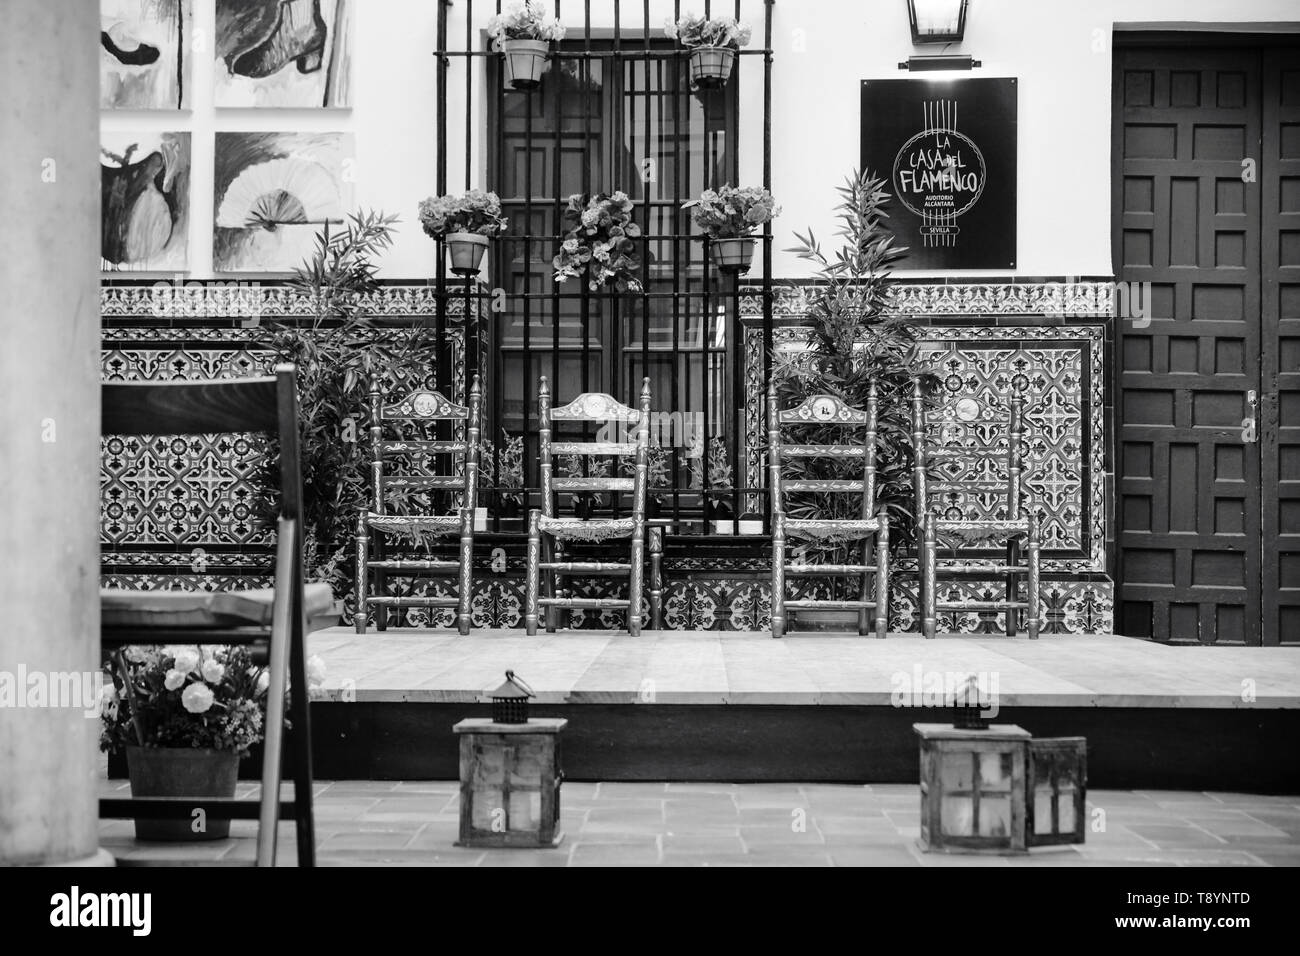 April 2019 - traditional spanish place for flamenco house show dancer in Andalisia Seville Spain - Stock Image